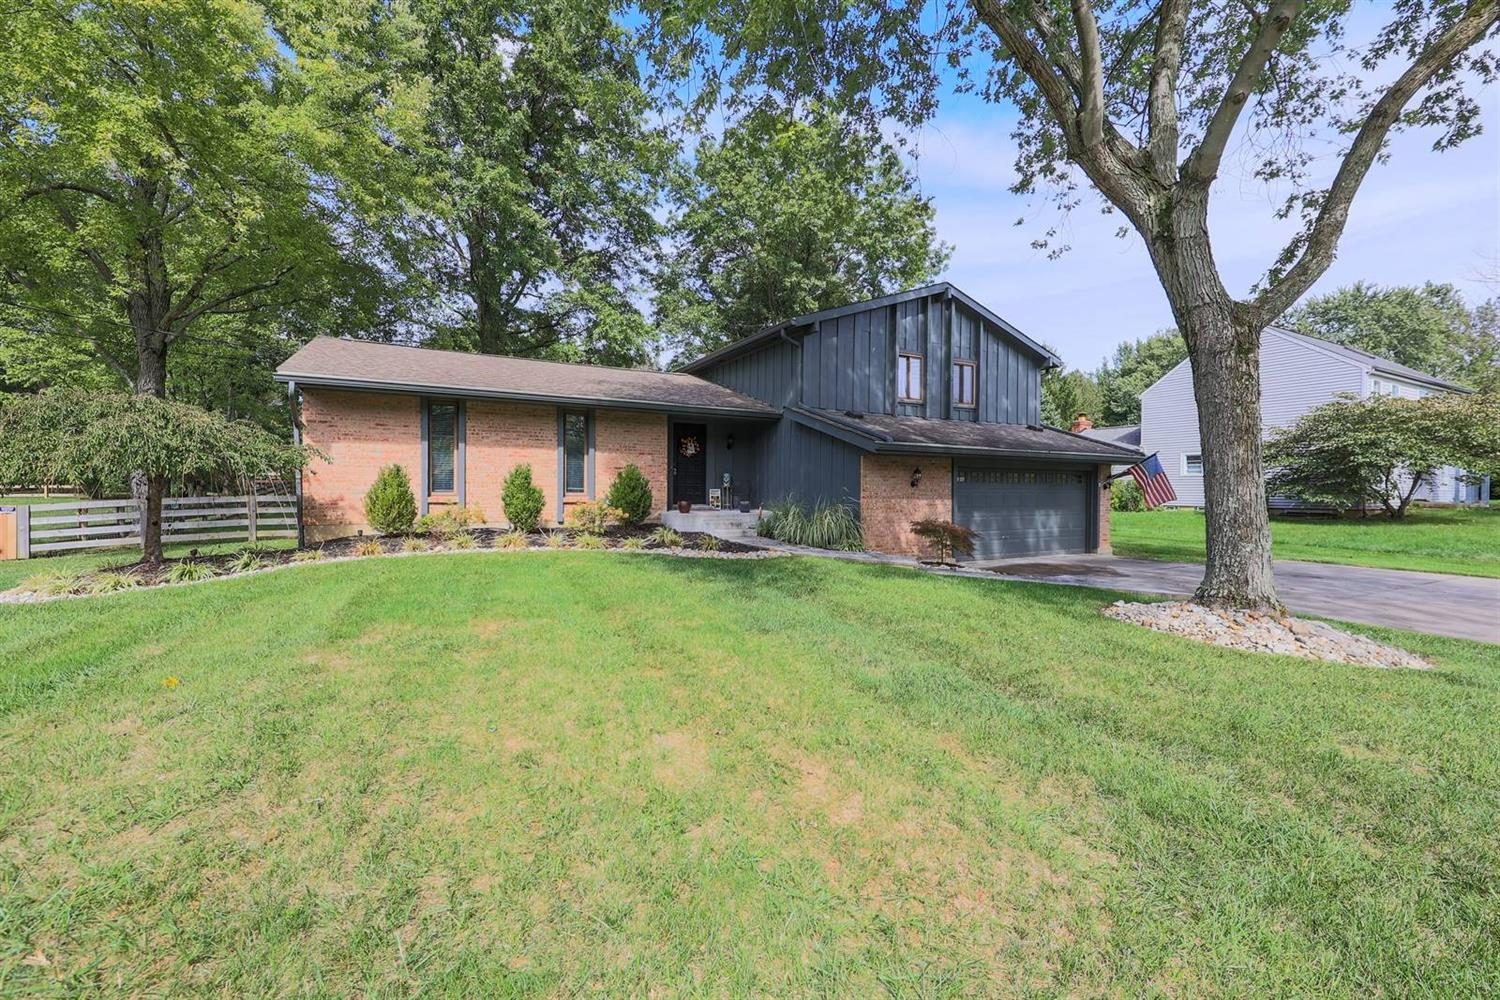 9164 Hopewell Road, Symmes Twp, Ohio 45242, 3 Bedrooms Bedrooms, 7 Rooms Rooms,2 BathroomsBathrooms,Single Family Residence,For Sale,Hopewell,1718418